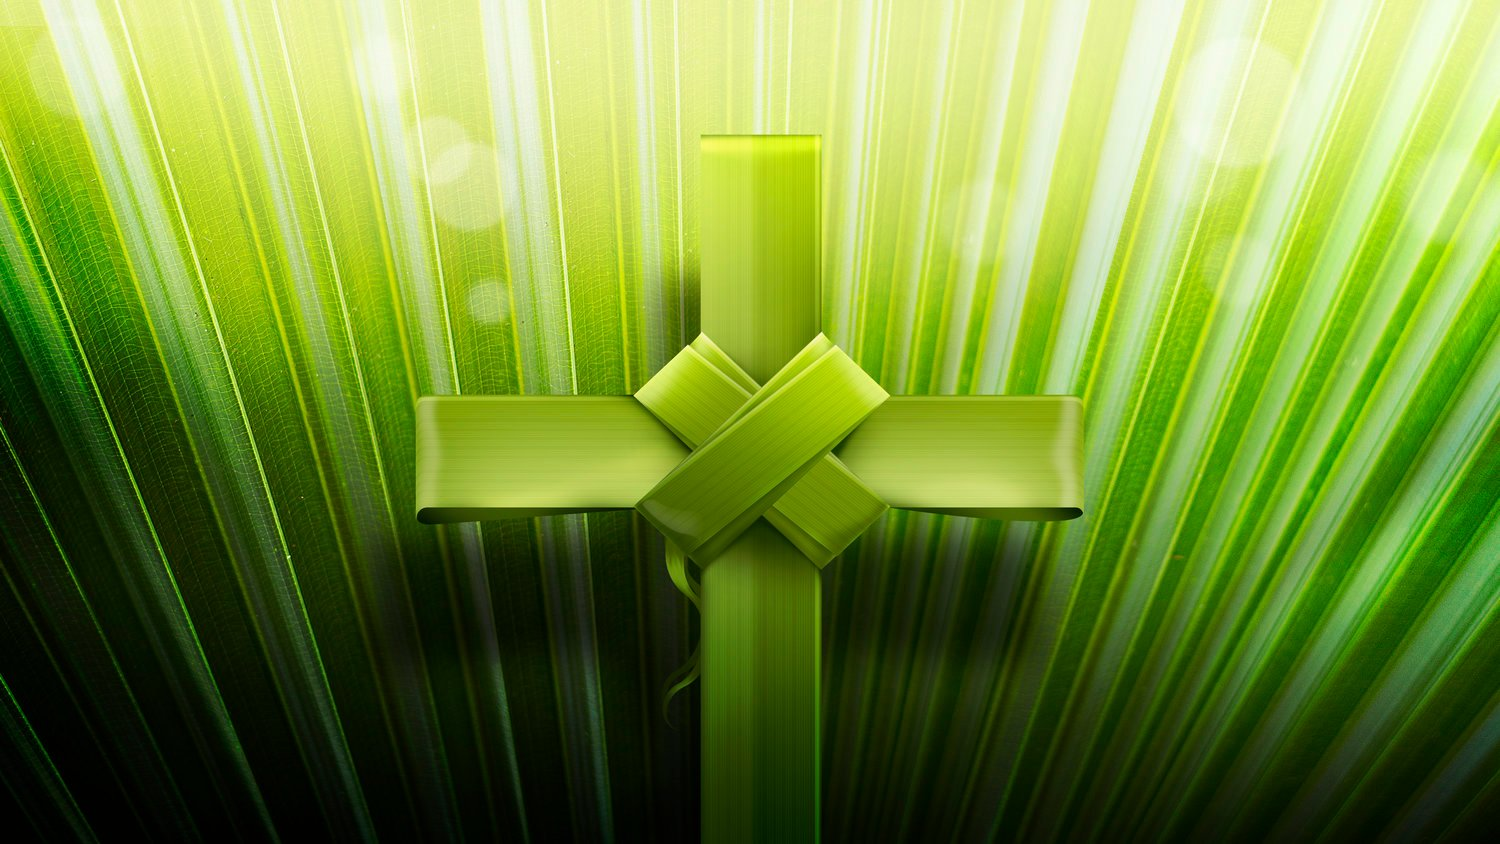 Free download Palm Sunday Wallpaper 89 images in ...